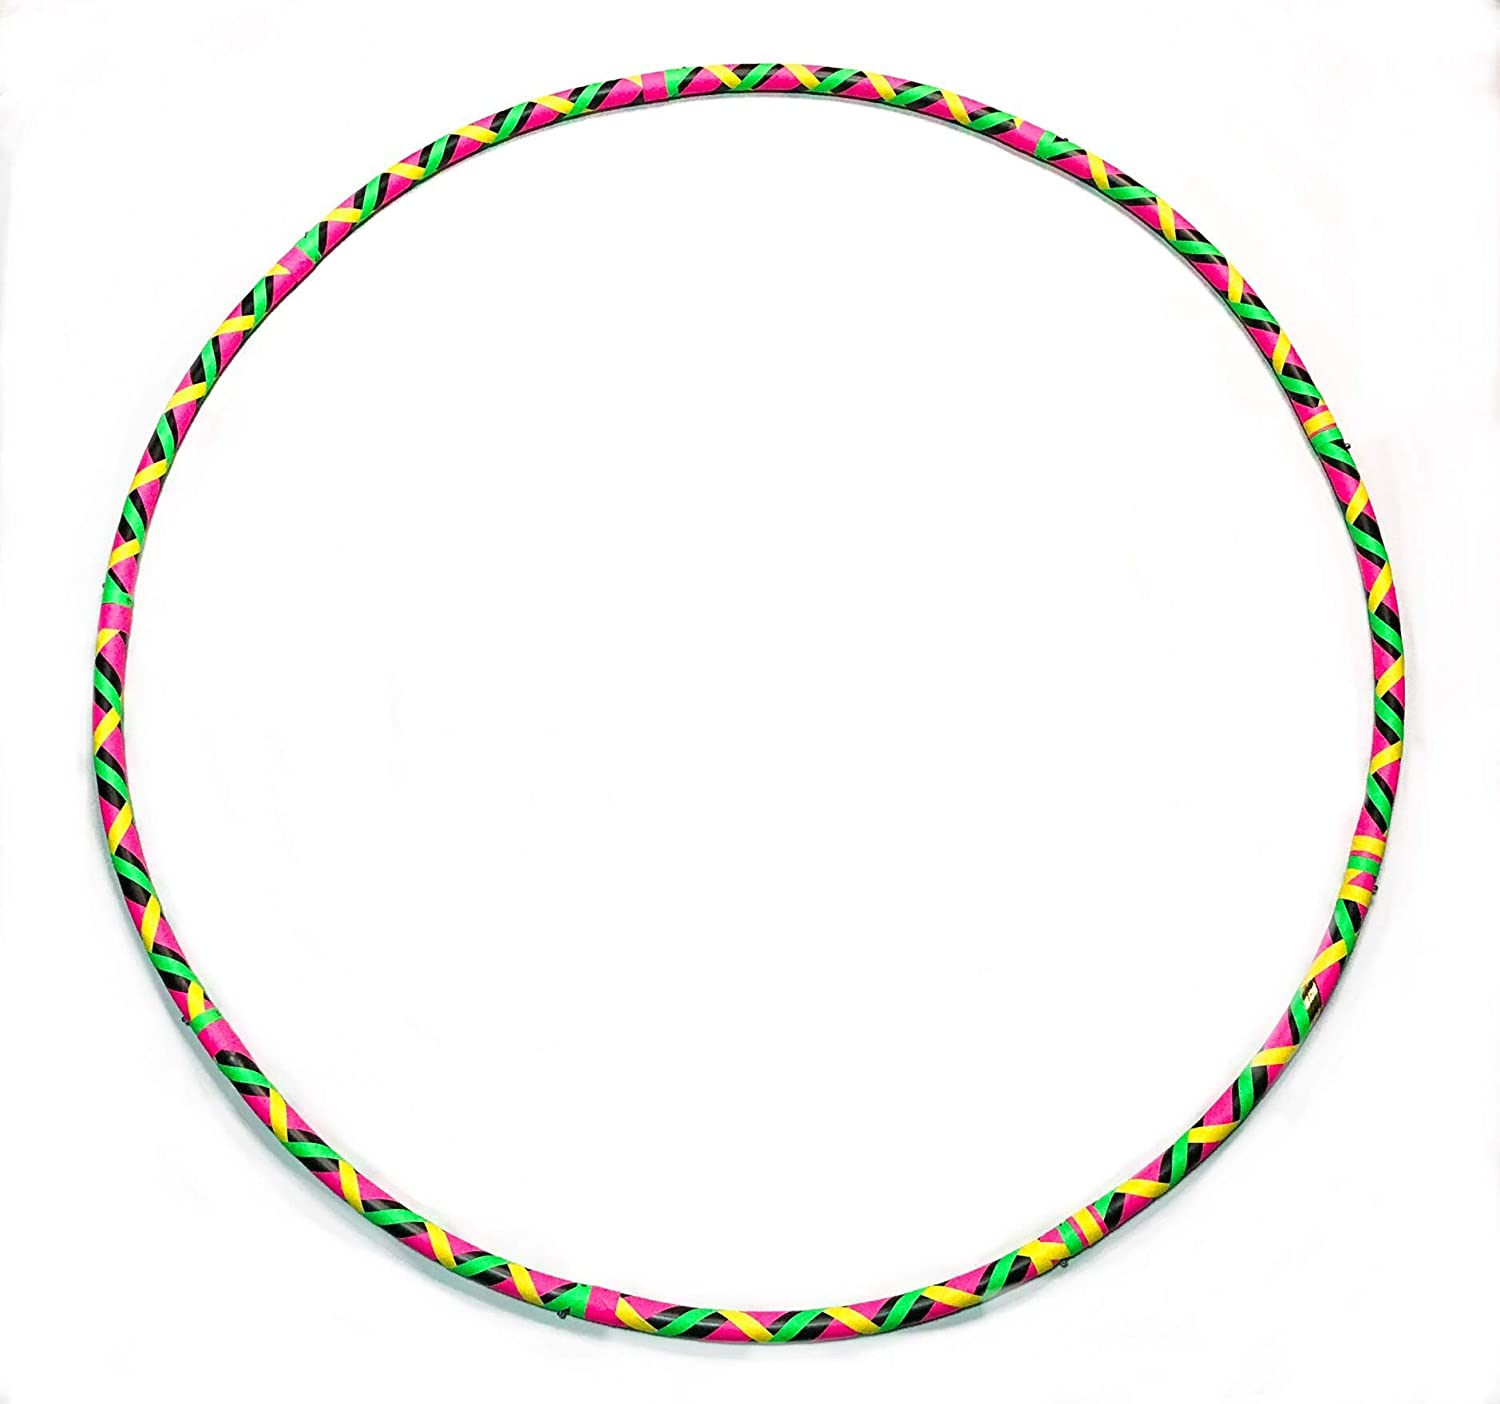 aRoundJoy CUSTOM Snap-n-gO WOO-Hoop Large Adult Adjustable Lightly Weighted Hoop for Fitness Exercise Dance